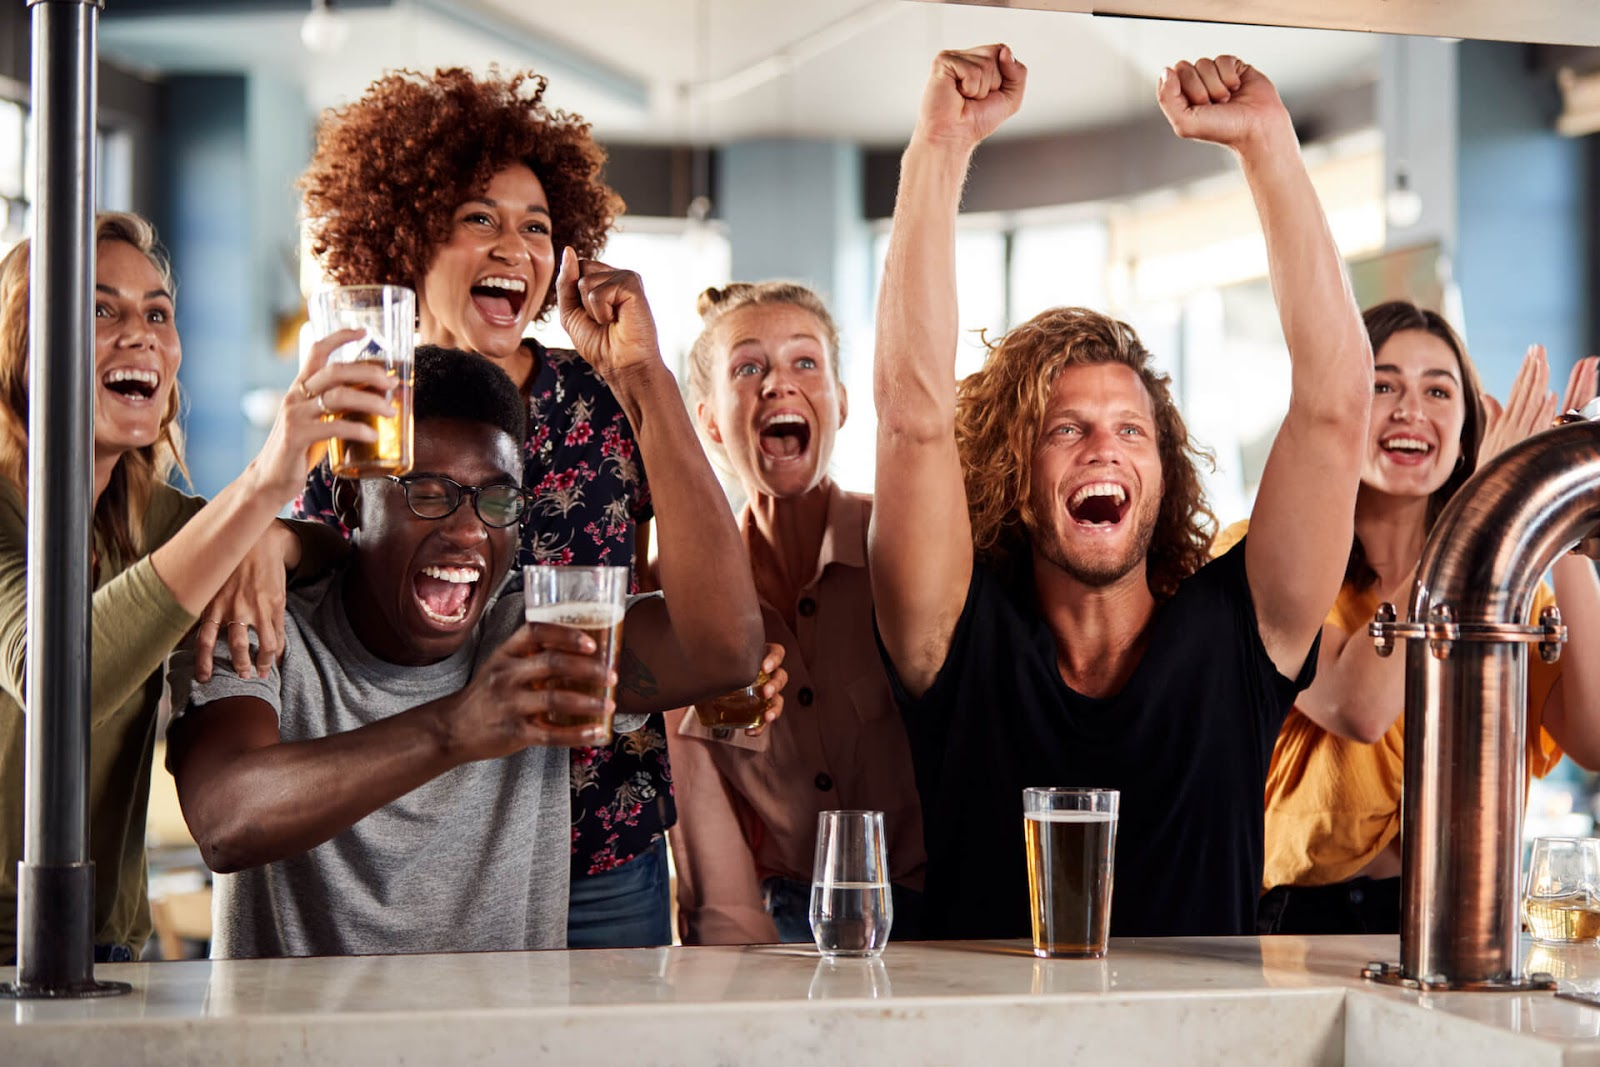 Group of people cheering at a spots bar